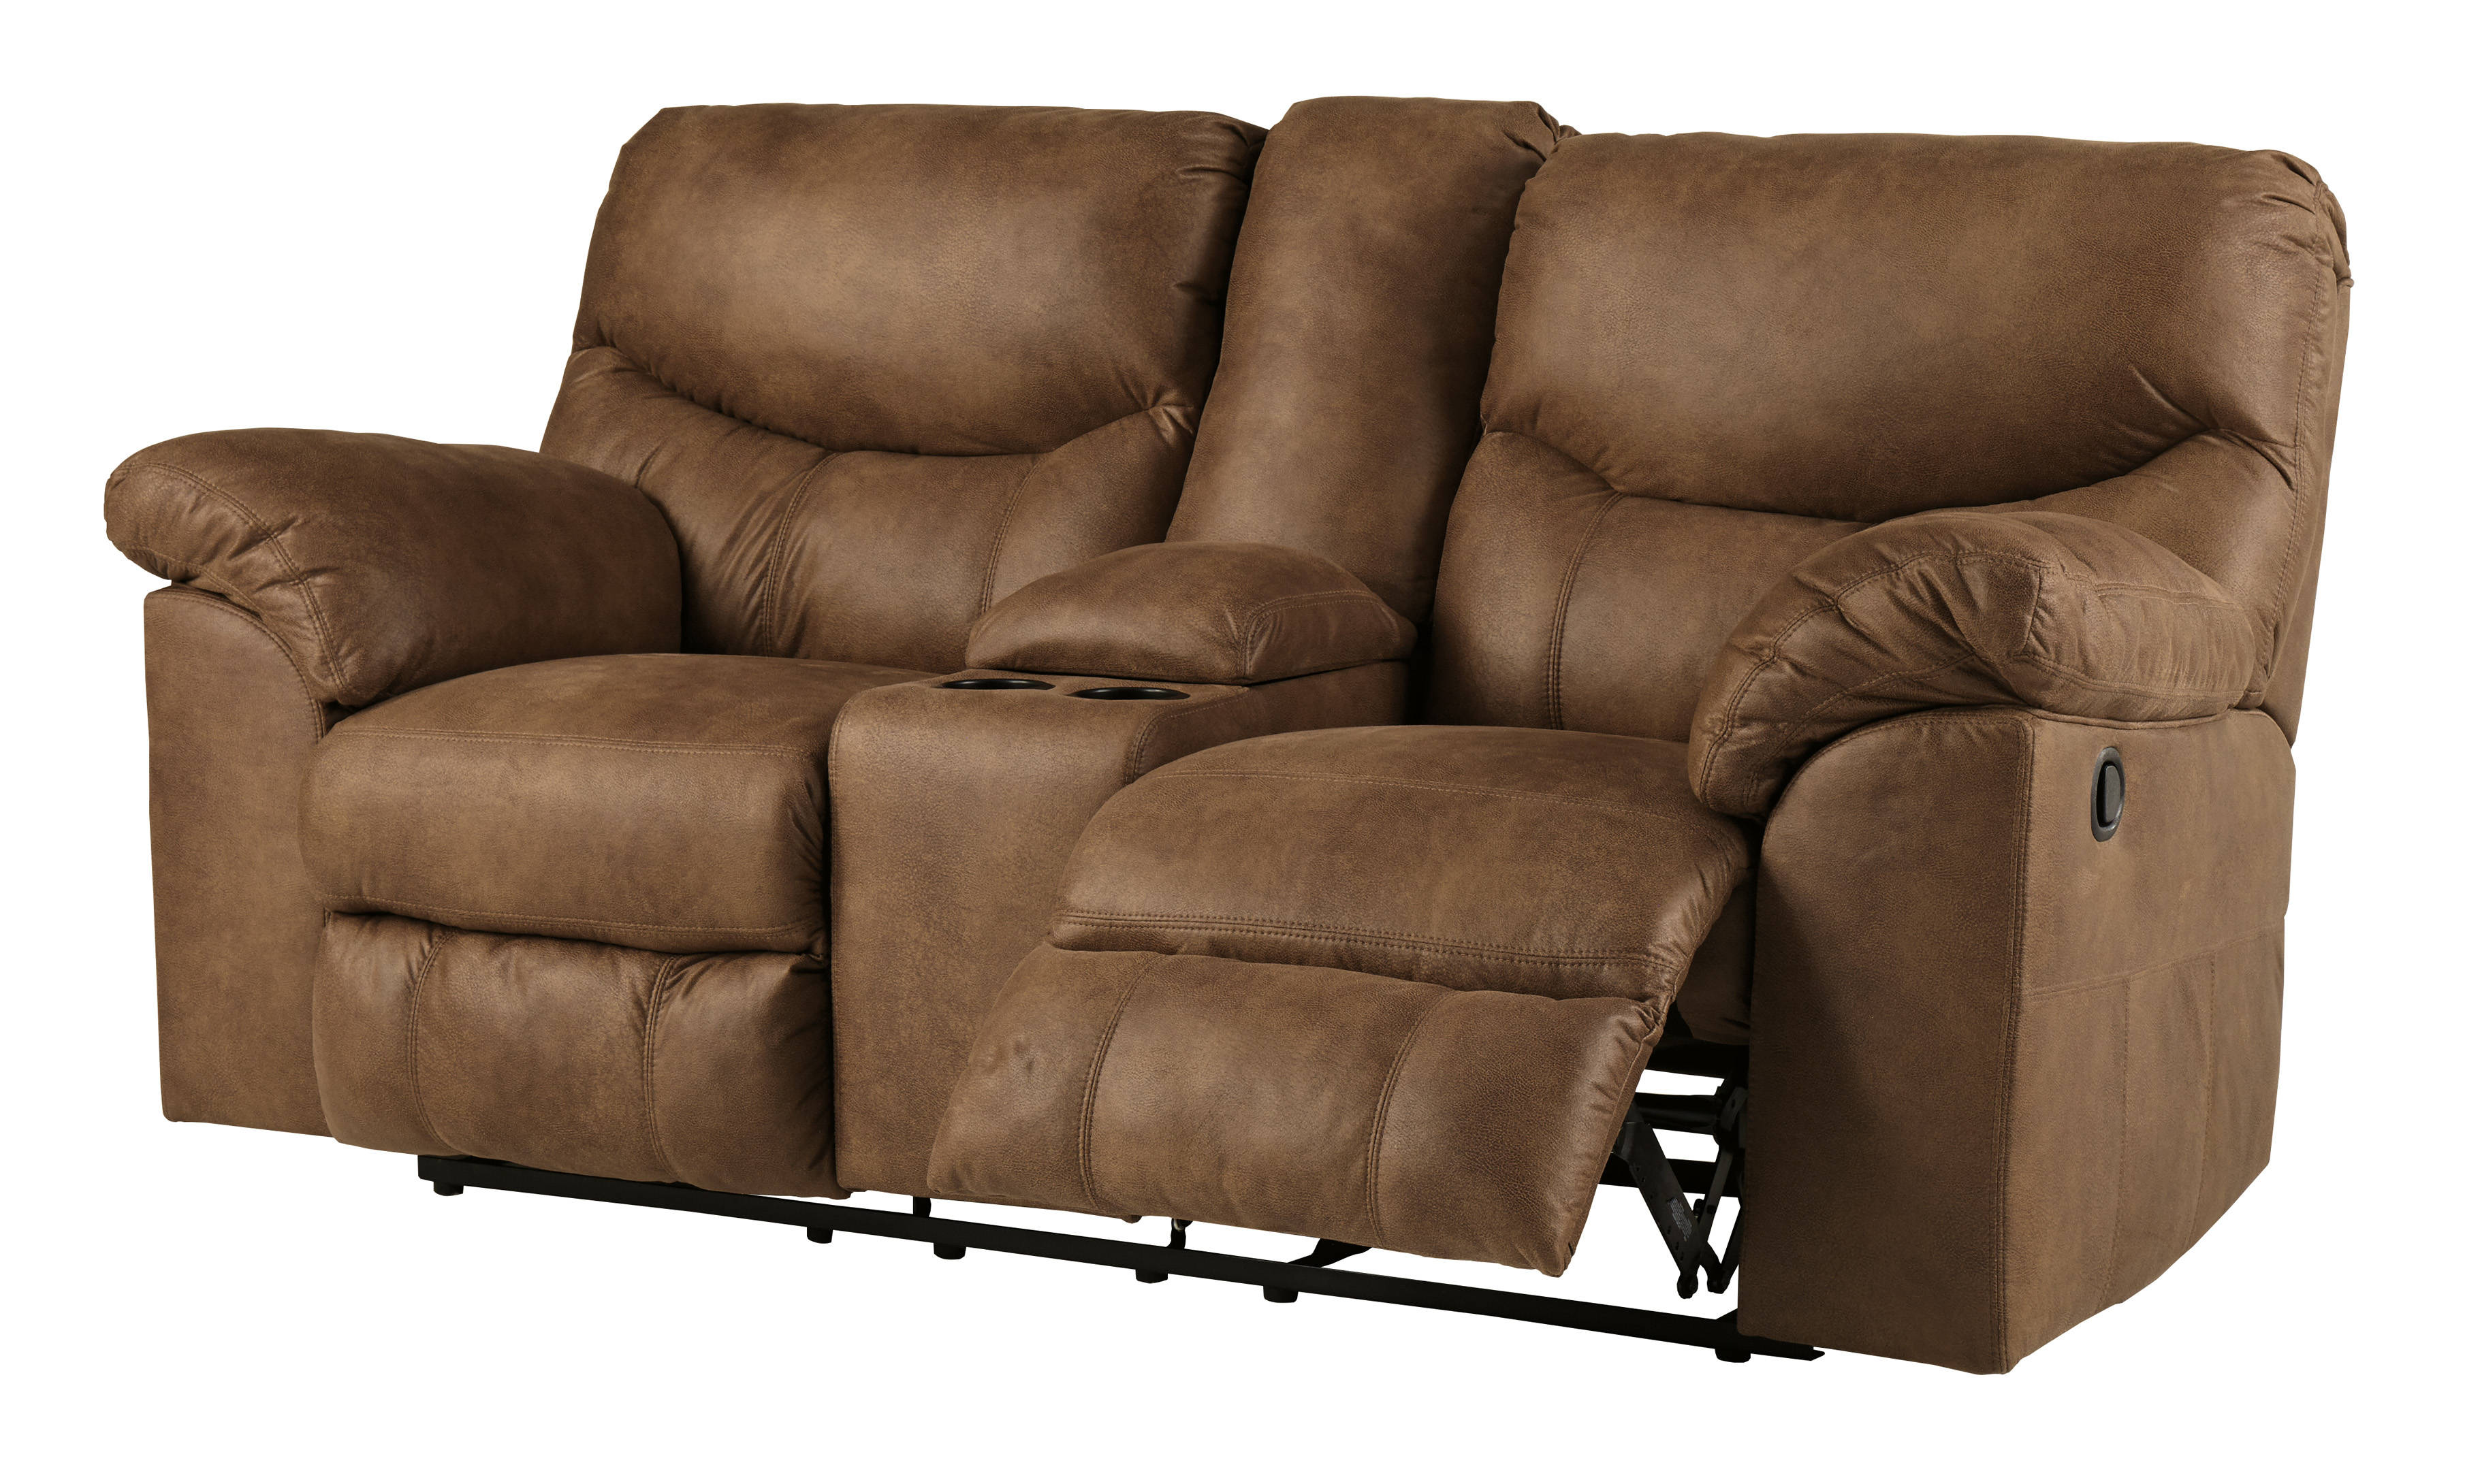 Ashley Furniture Boxberg Bark Double Recliner Loveseat With Console Click To Enlarge